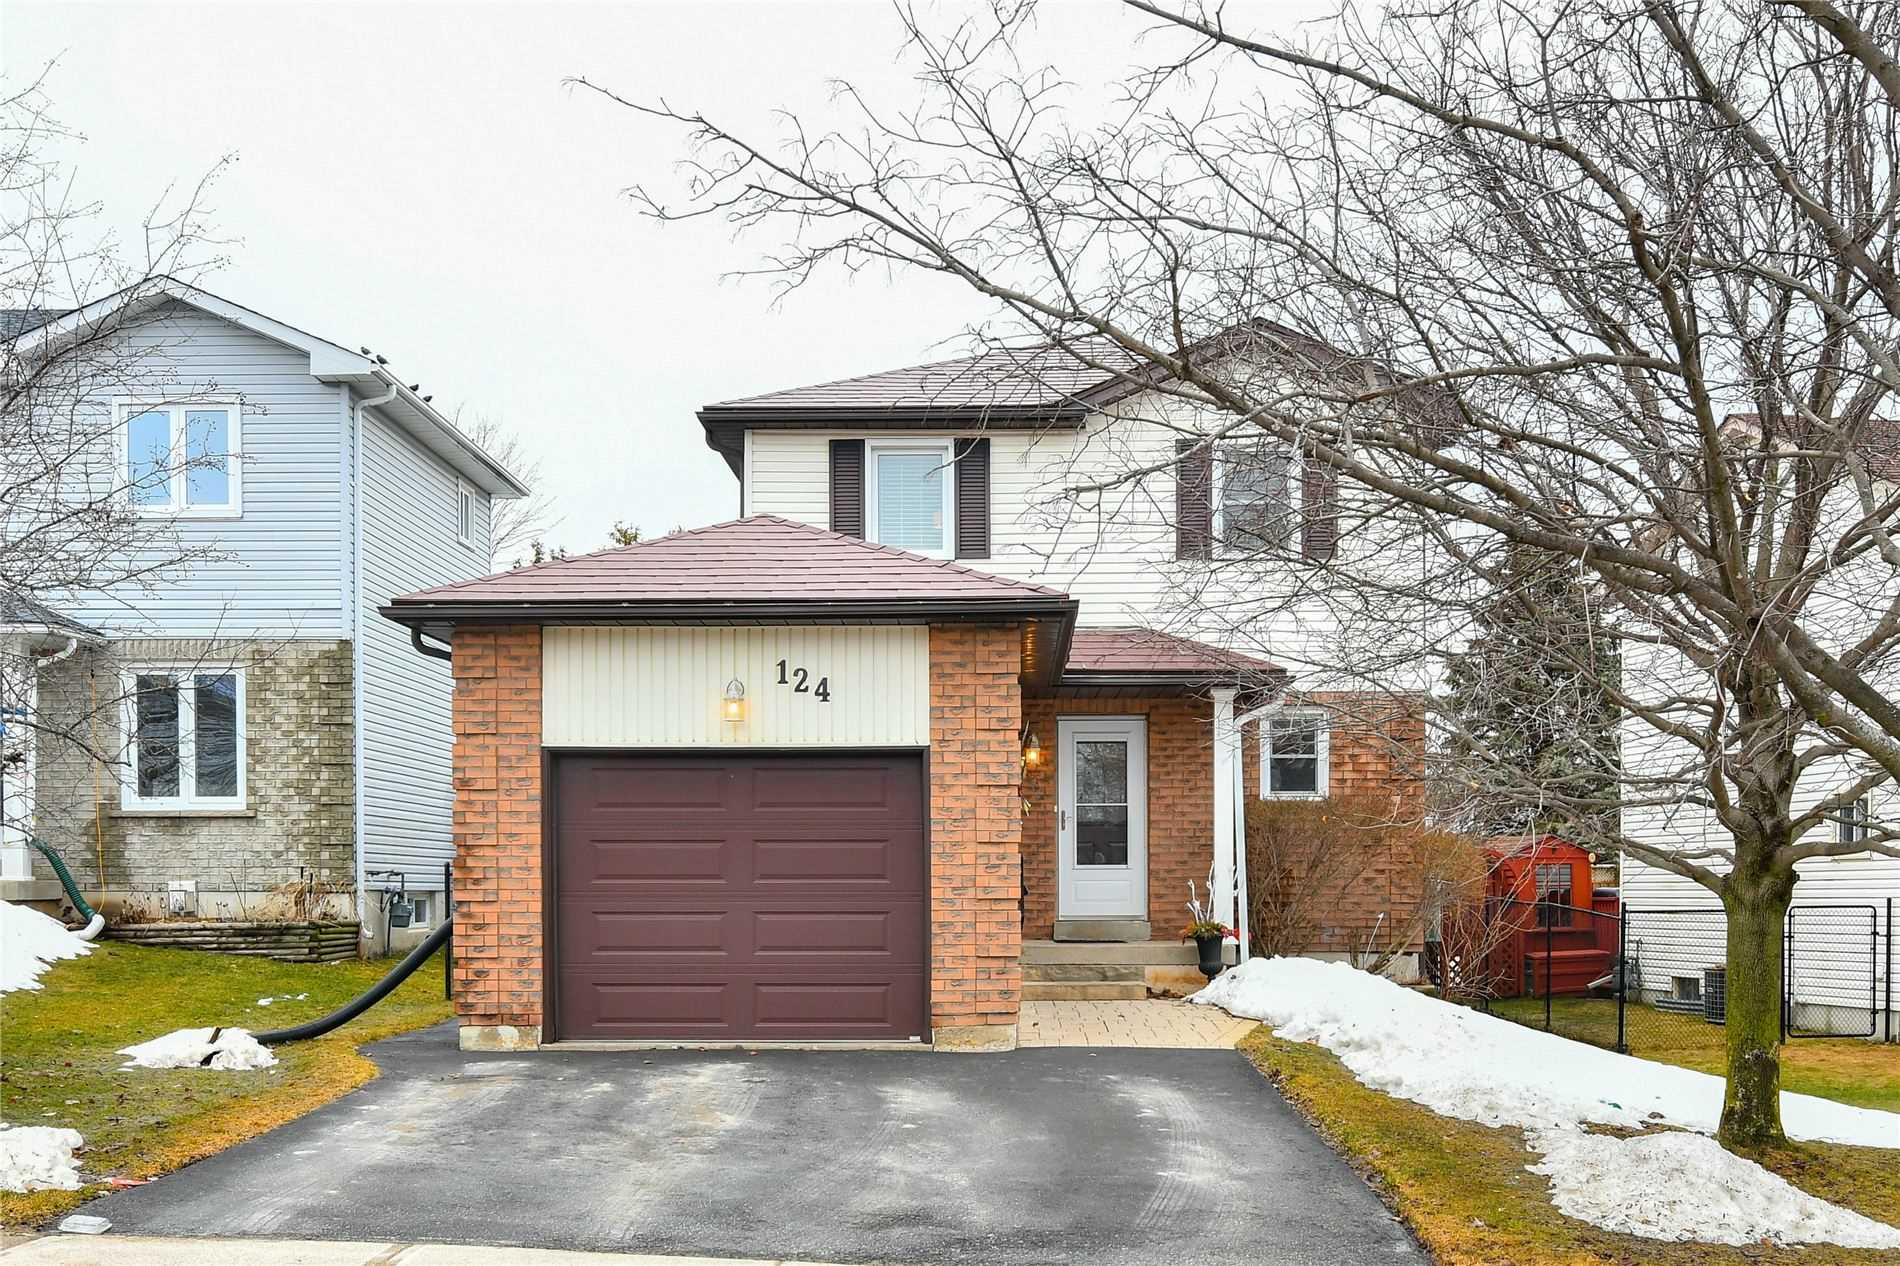 pictures of house for sale MLS: W4731078 located at 124 Courtney Cres, Orangeville L9W4S3